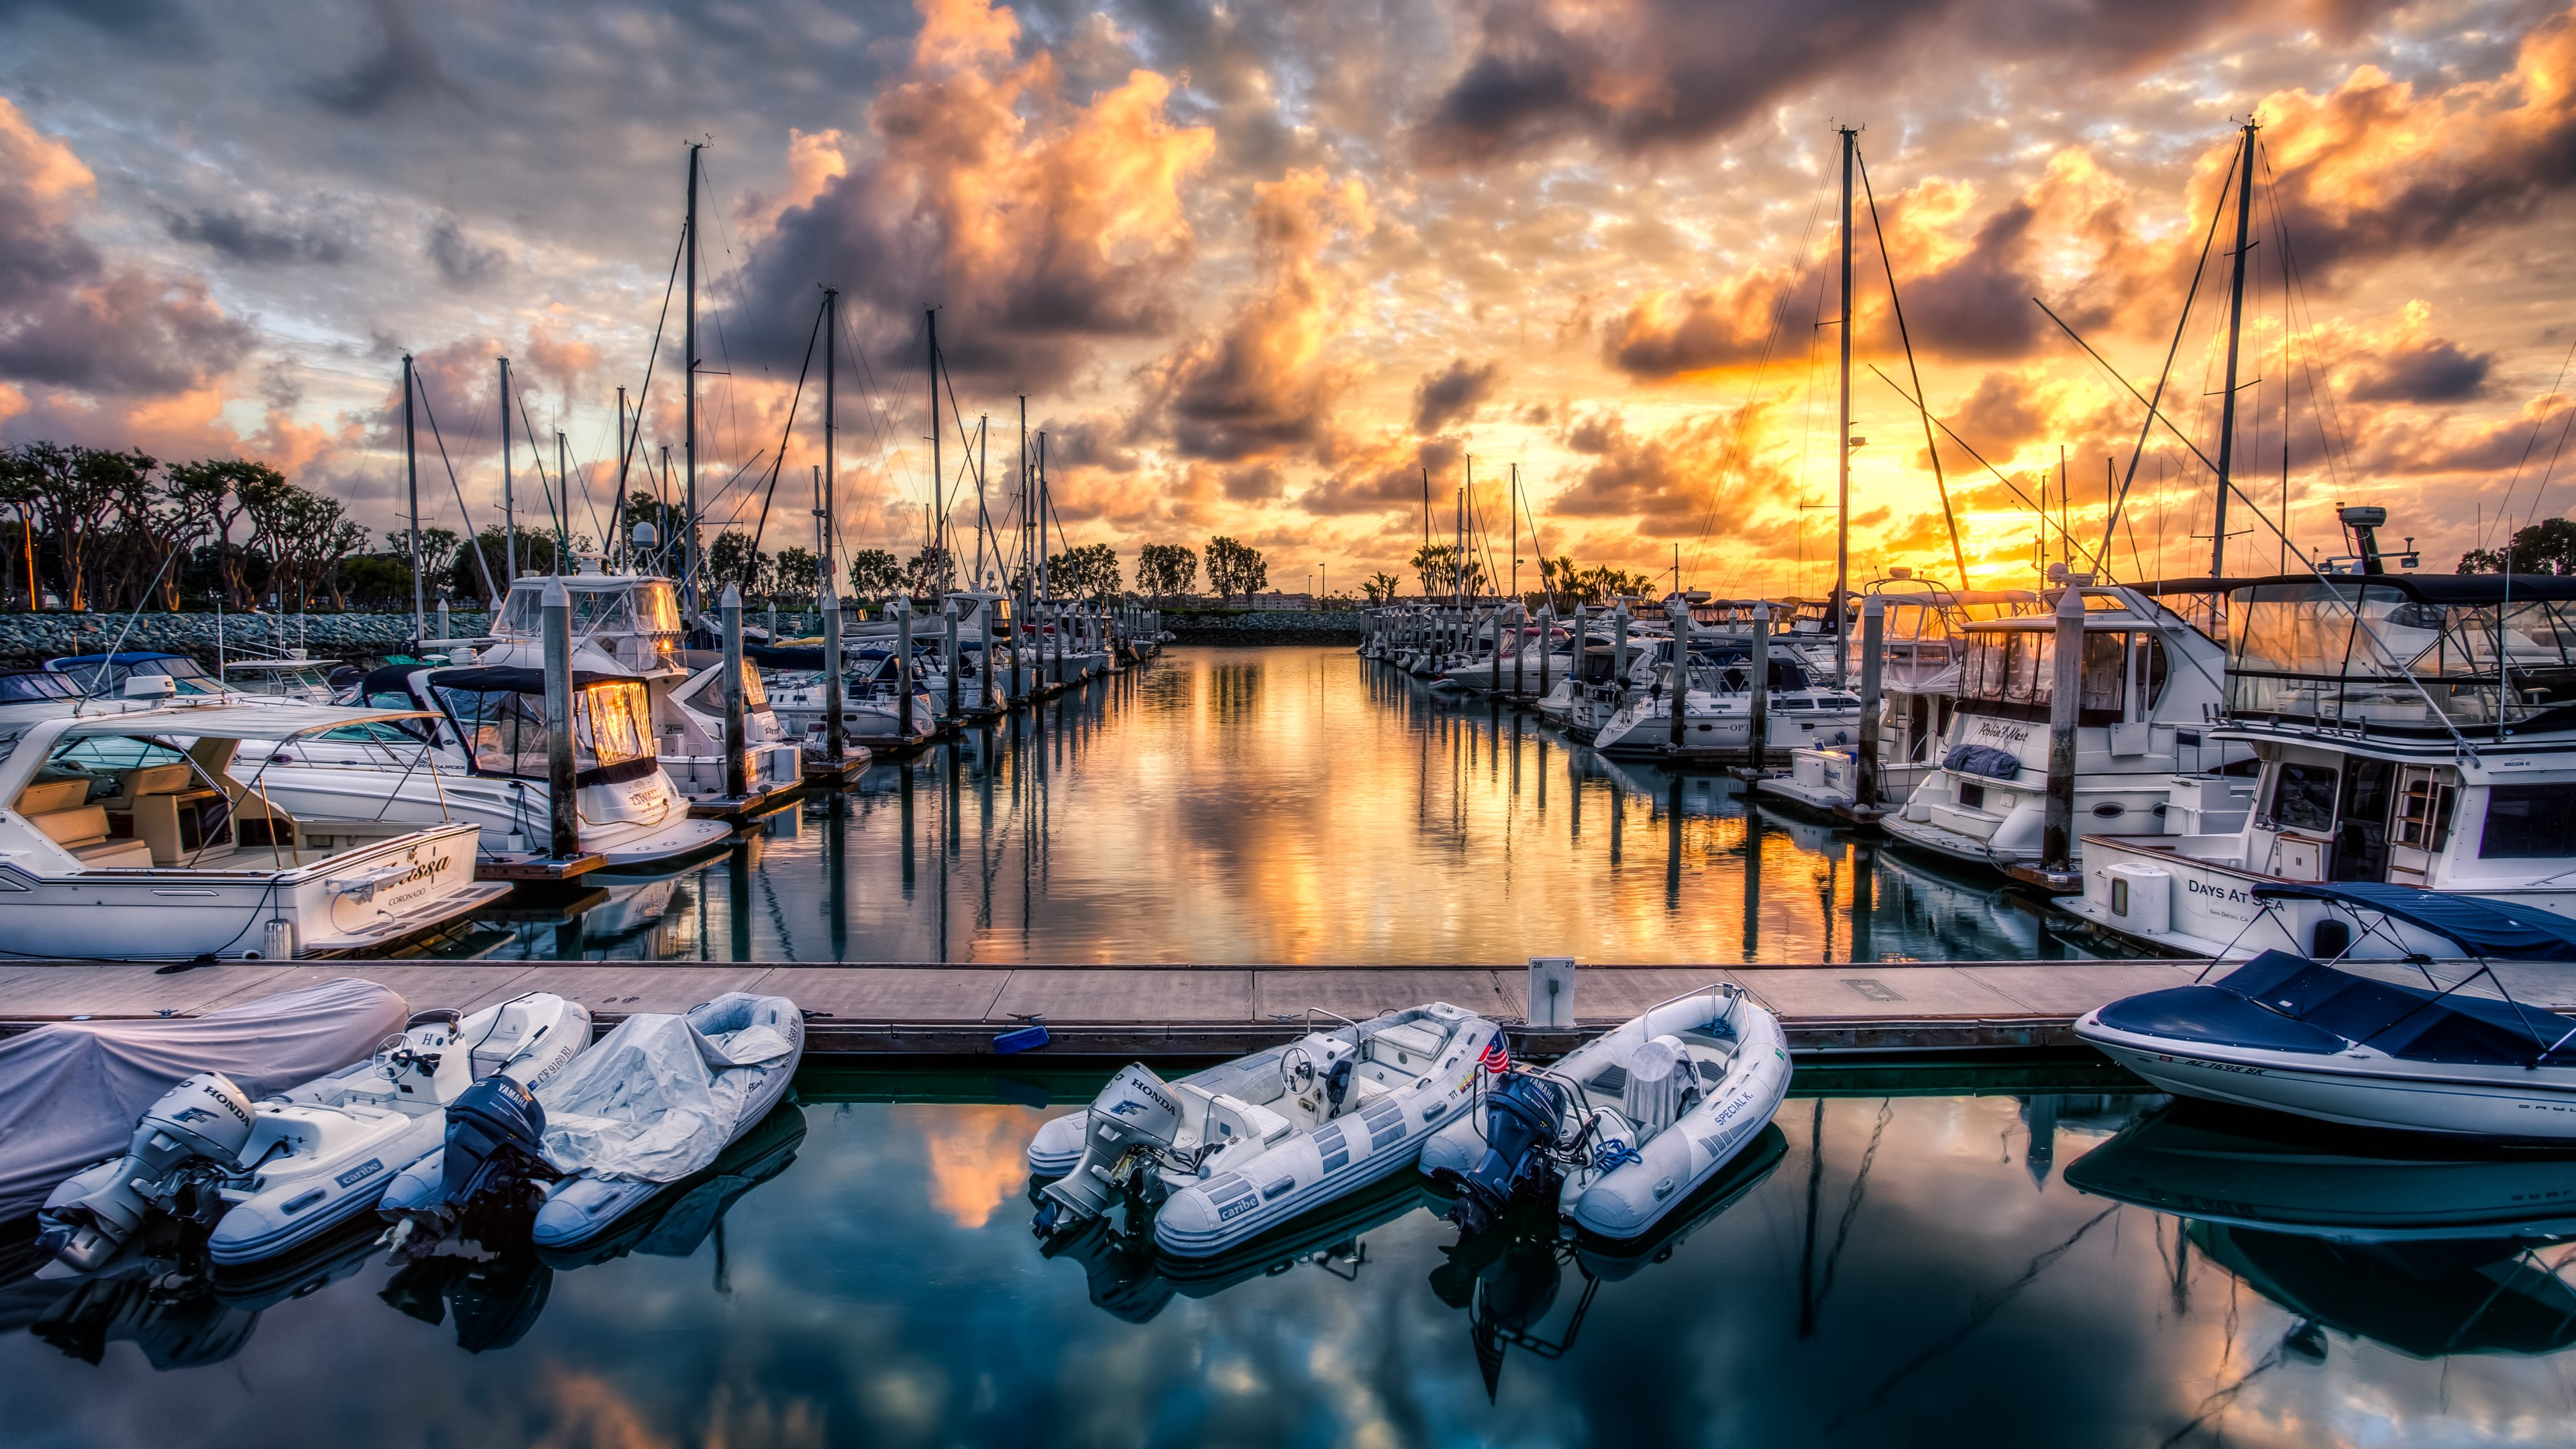 104 Harbor HD Wallpapers | Backgrounds - Wallpaper Abyss